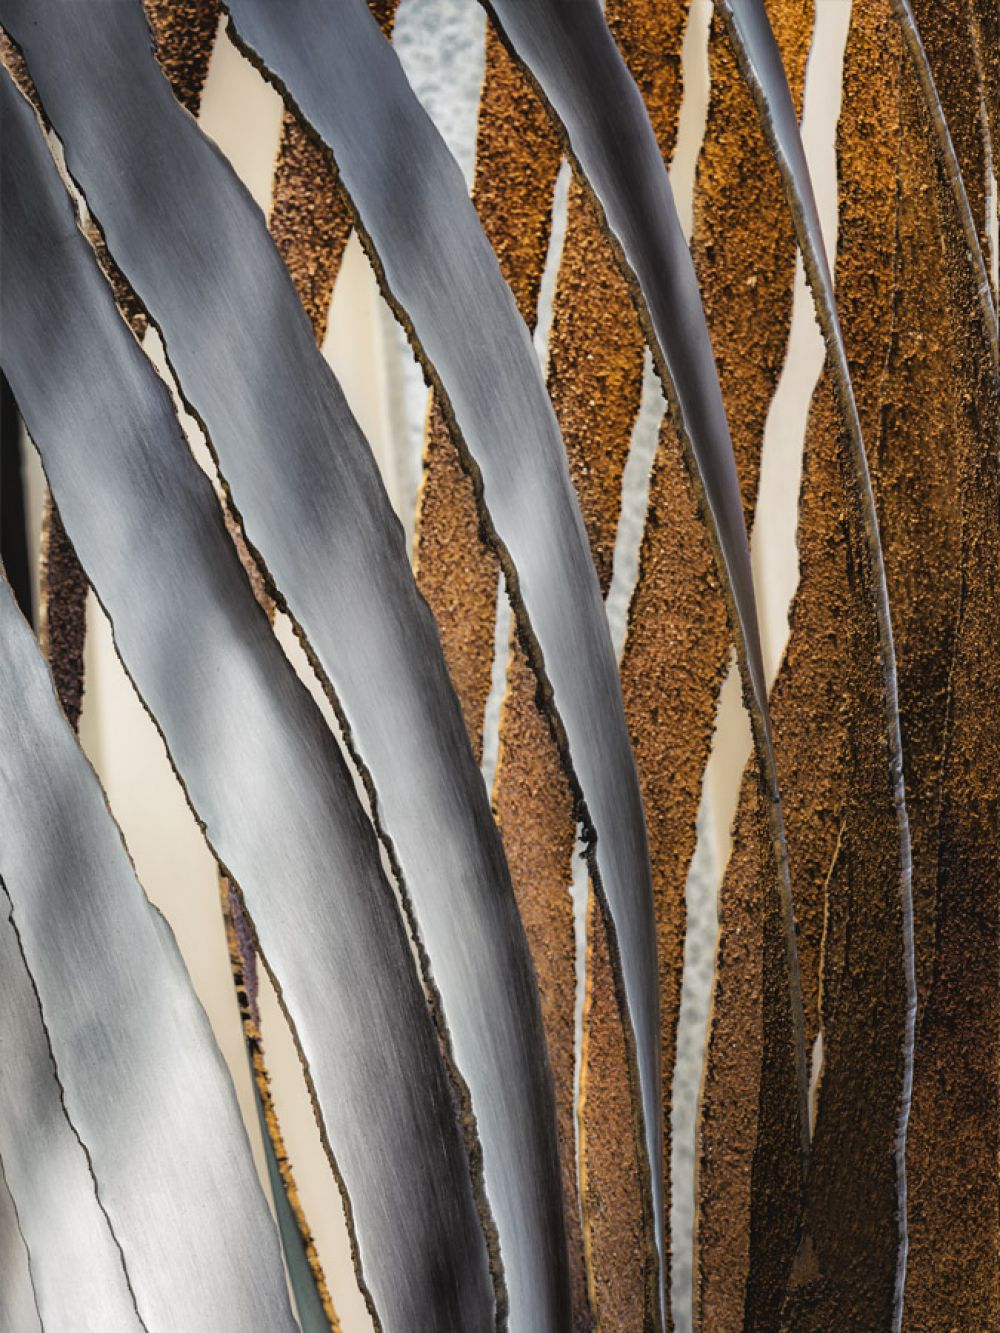 Details Of Koicea stainless steel - oxidized